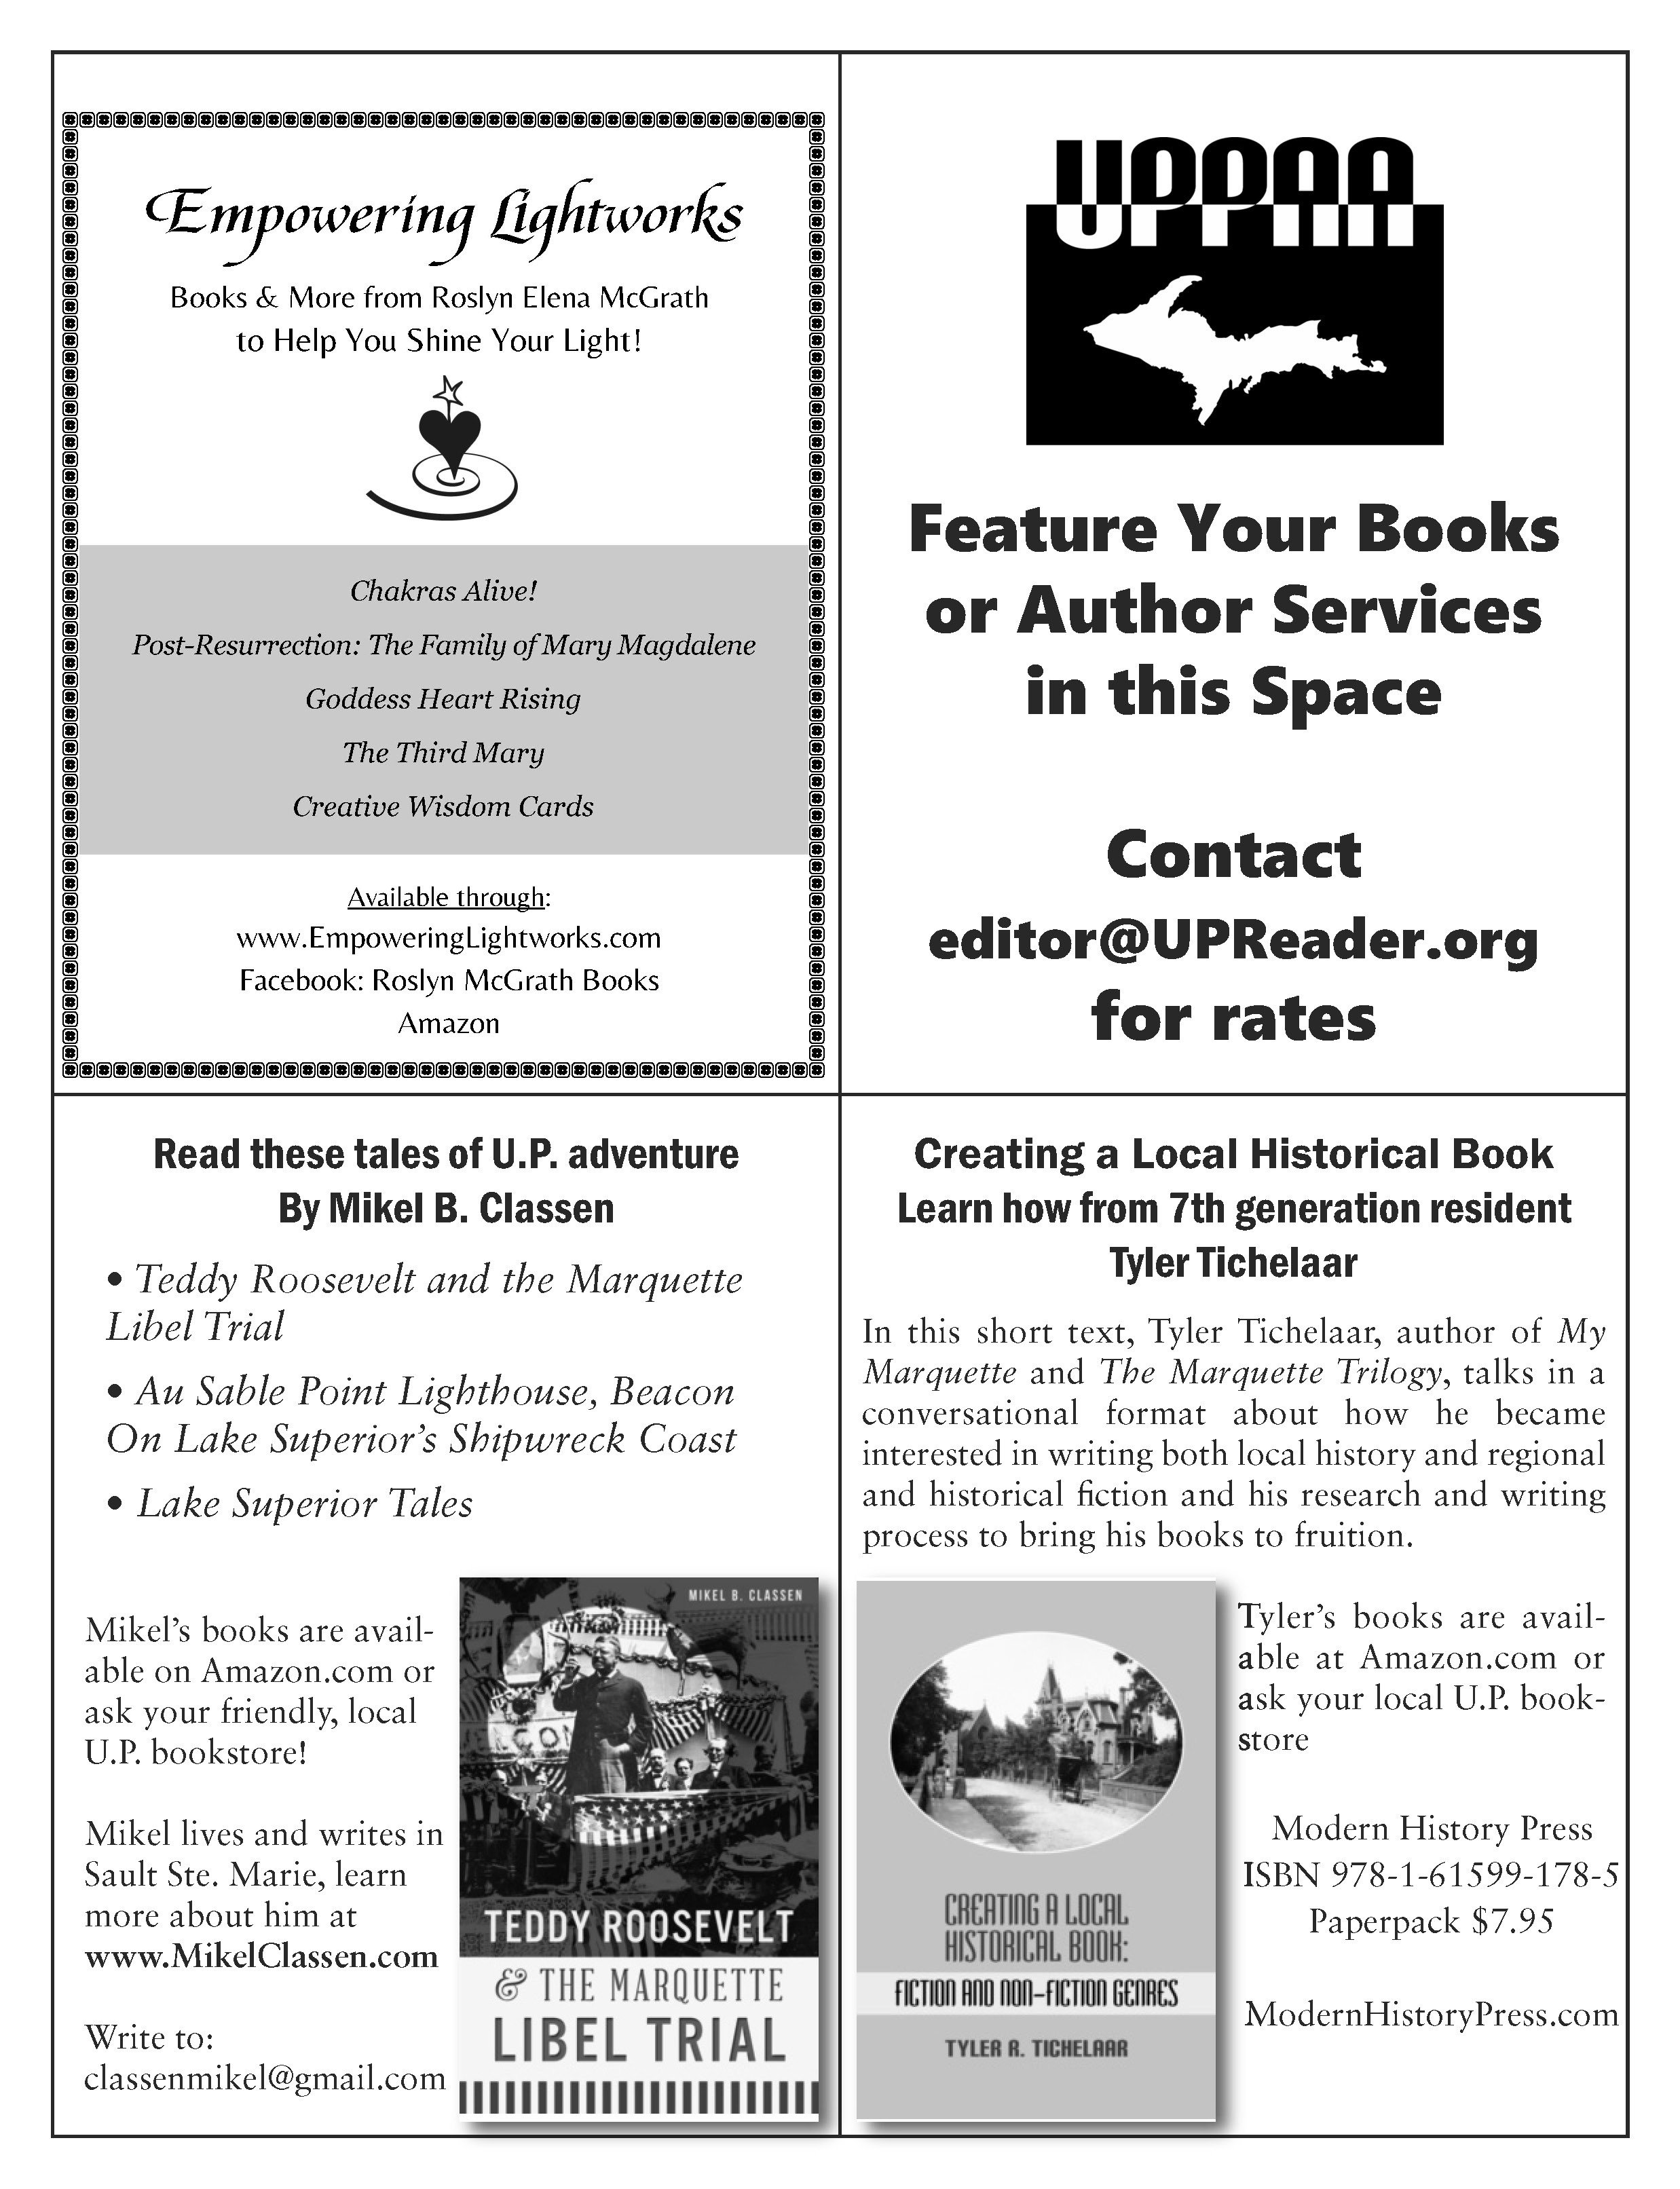 U.P. Reader Vol. 2 - Quarter Page advertising